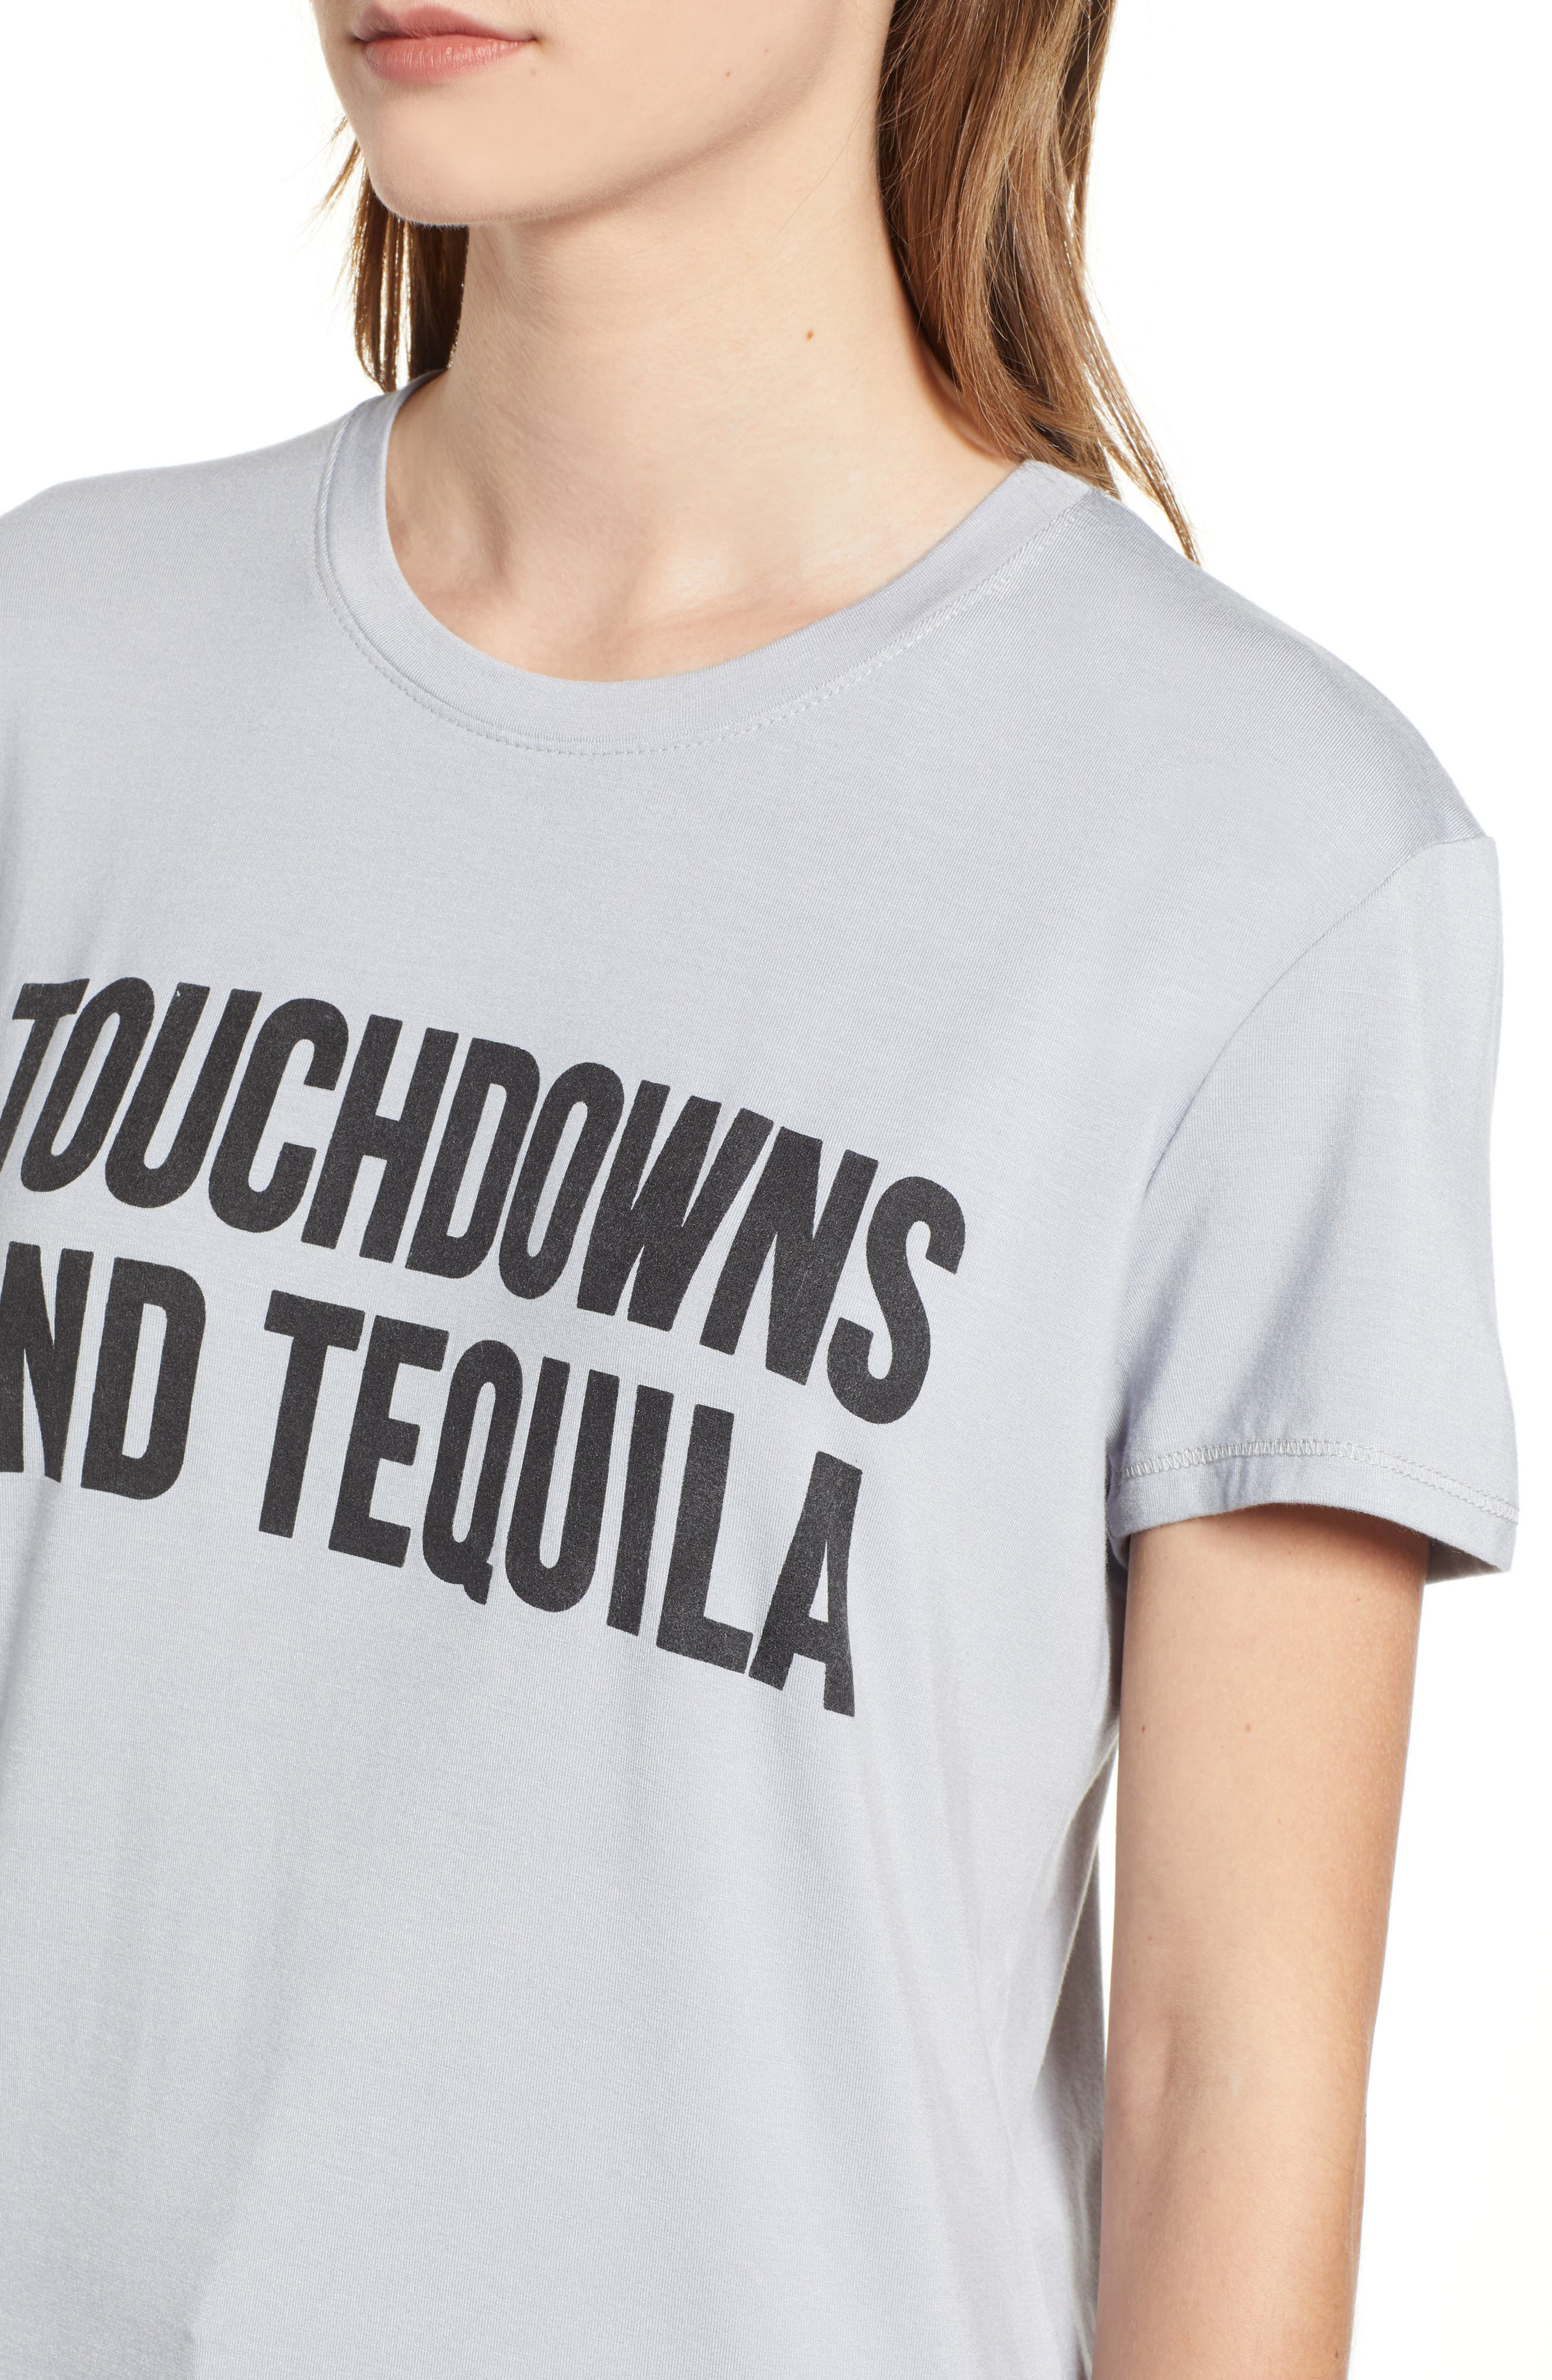 Touchdowns & Tequila Tee,                             Alternate thumbnail 4, color,                             GREY